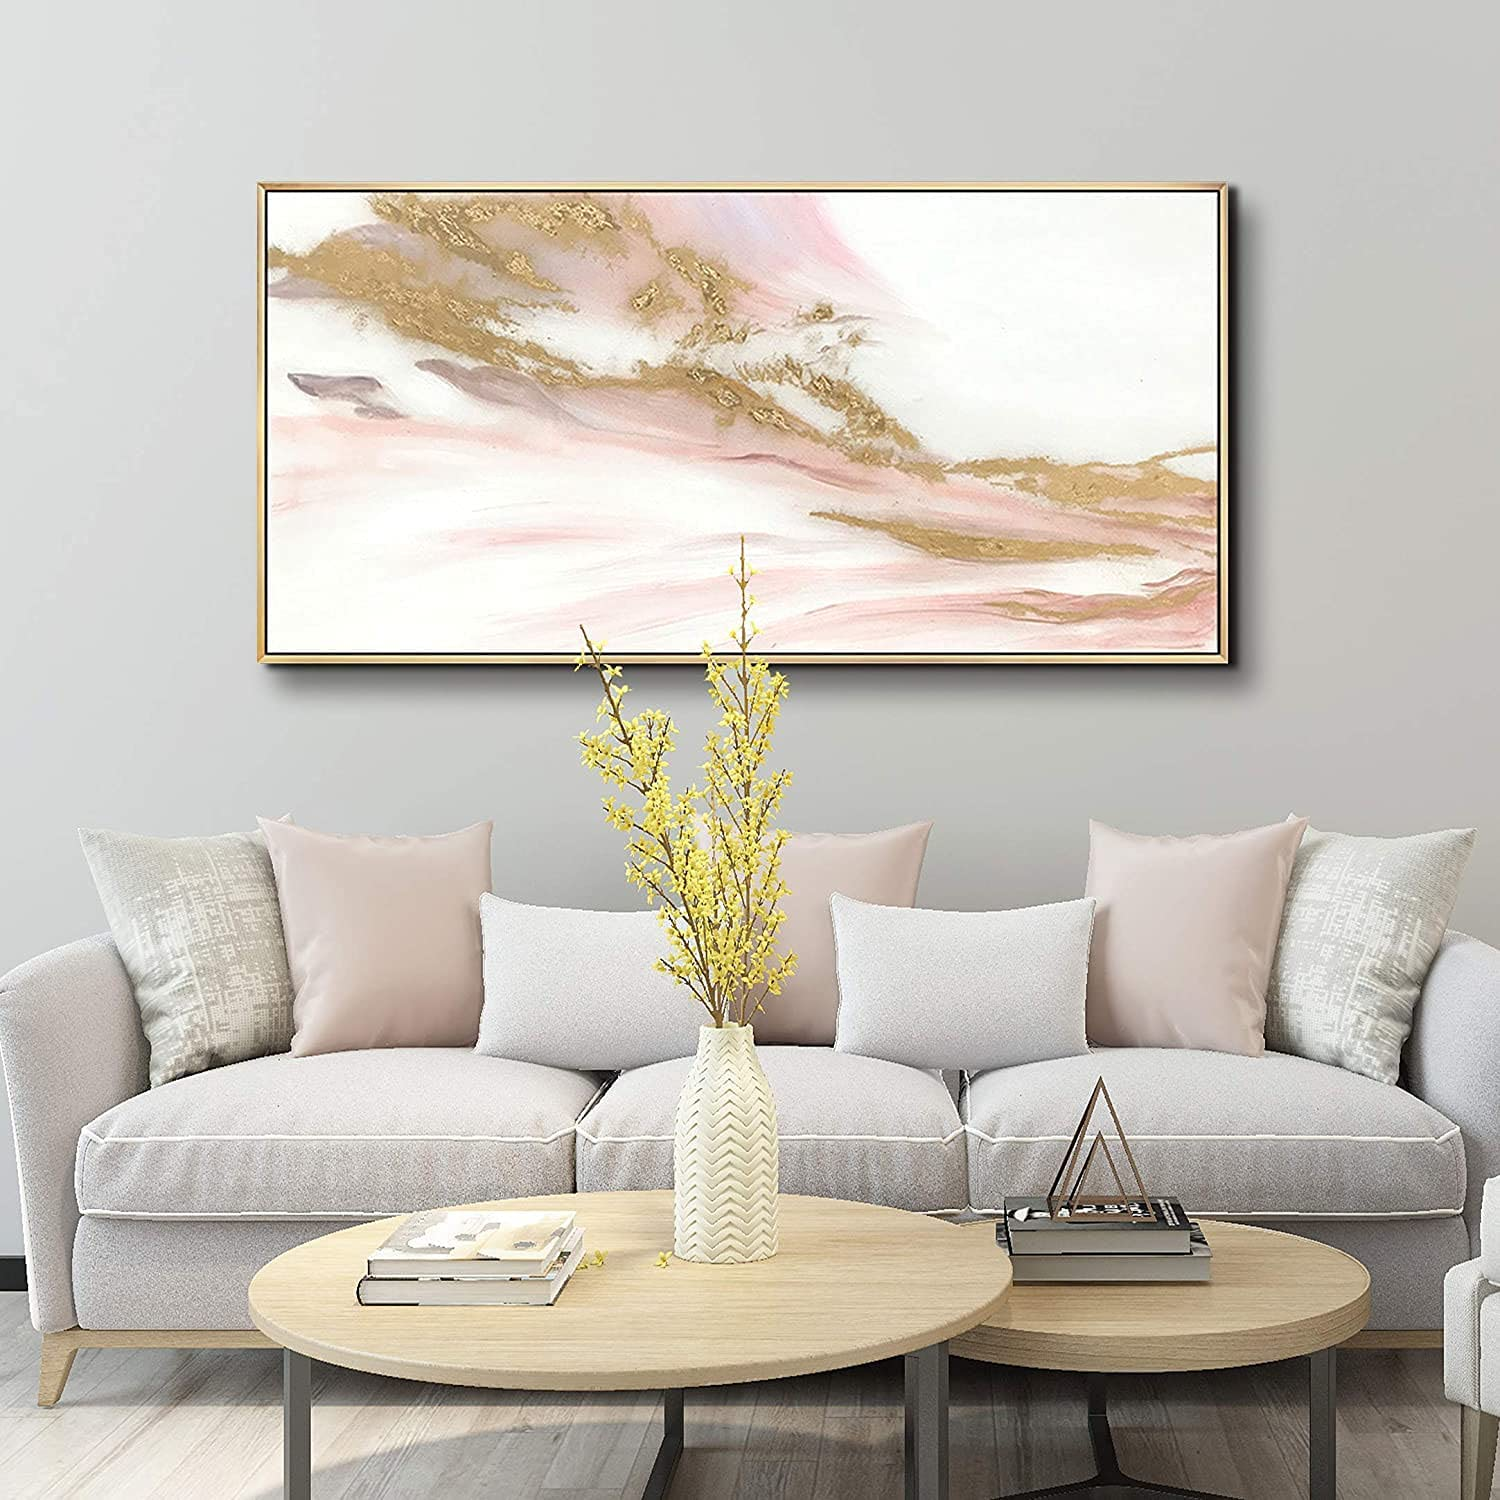 ARTLAND Canvas Prints Modern Abstract Wall Decor Water Flow Shape Contemporary Pink Gold Marble Pattern Wall Art for Living Room Bedroom Gallery Wrapped Ready to Hang 20x40 inches